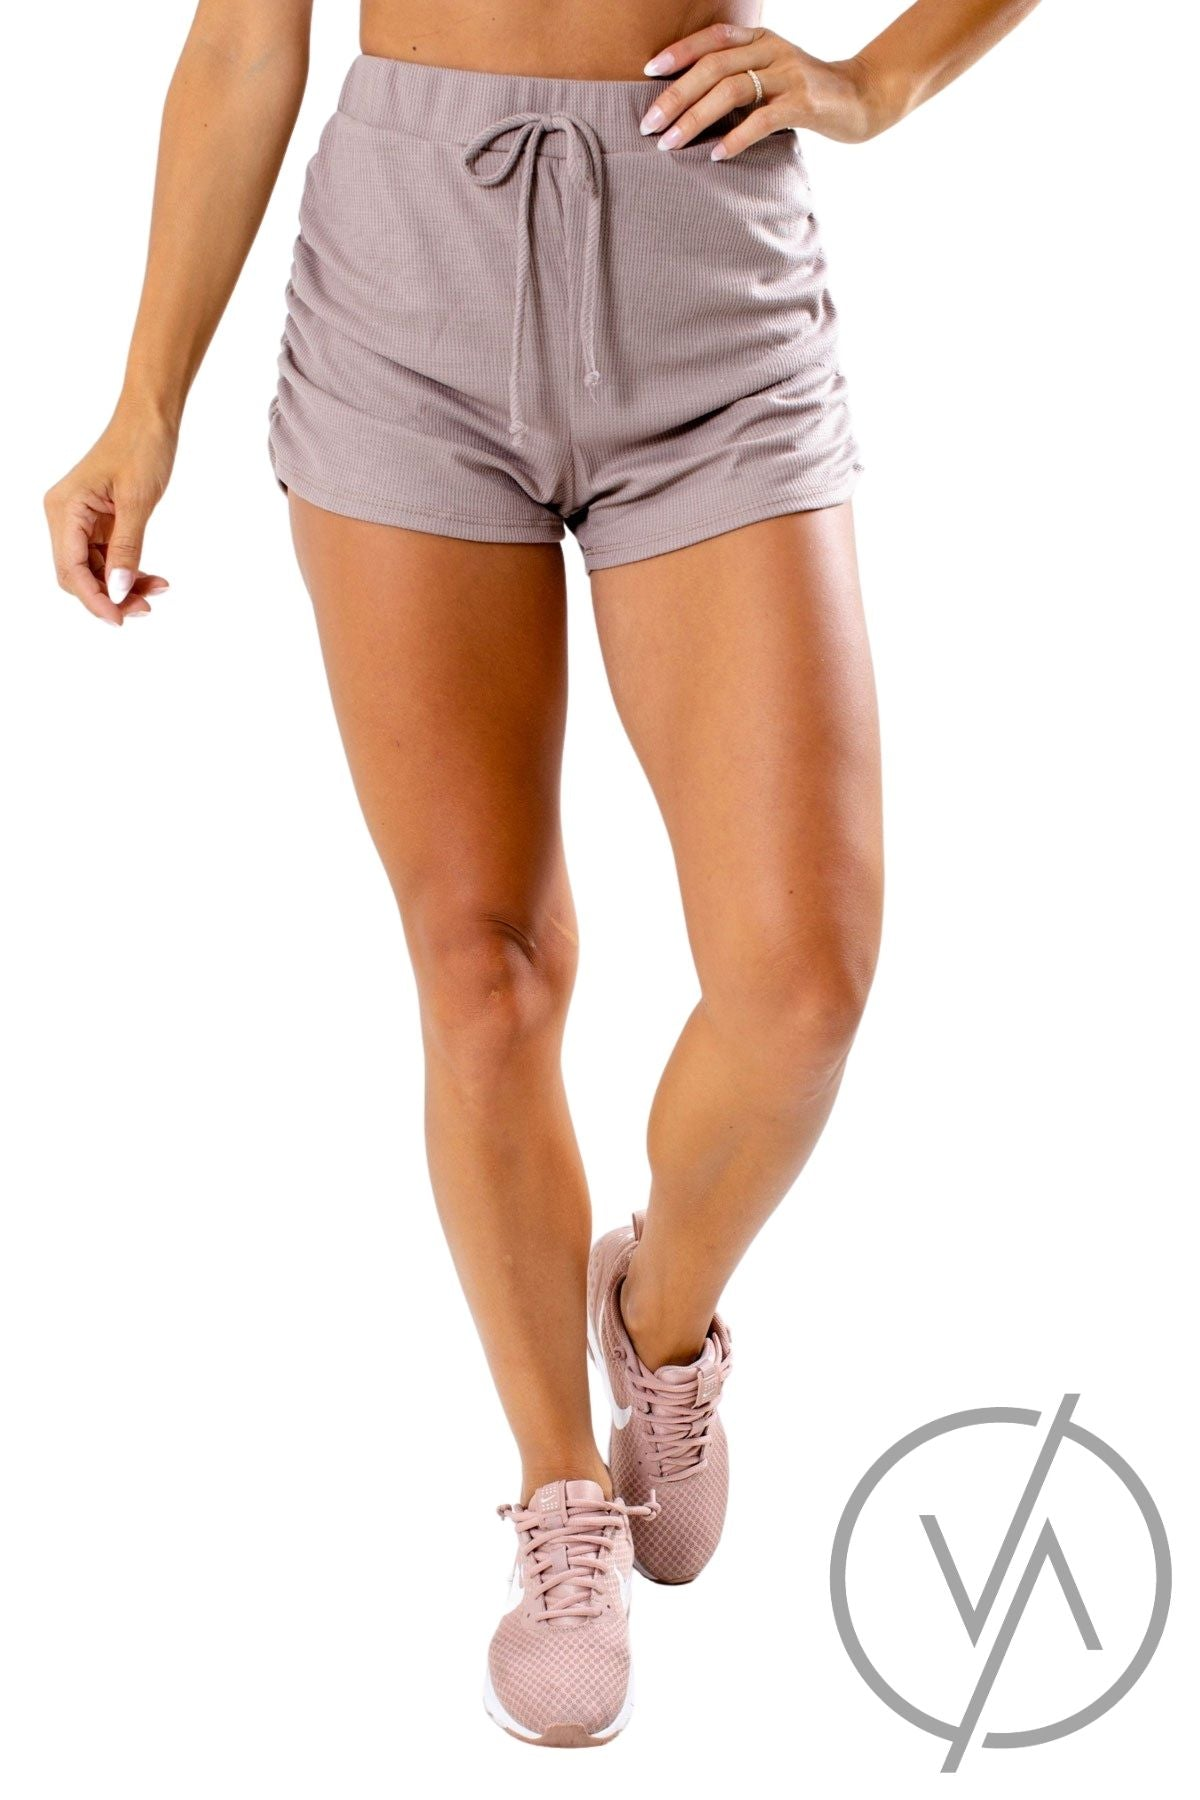 Mocha Ruched Detailed Athletic Shorts for Women